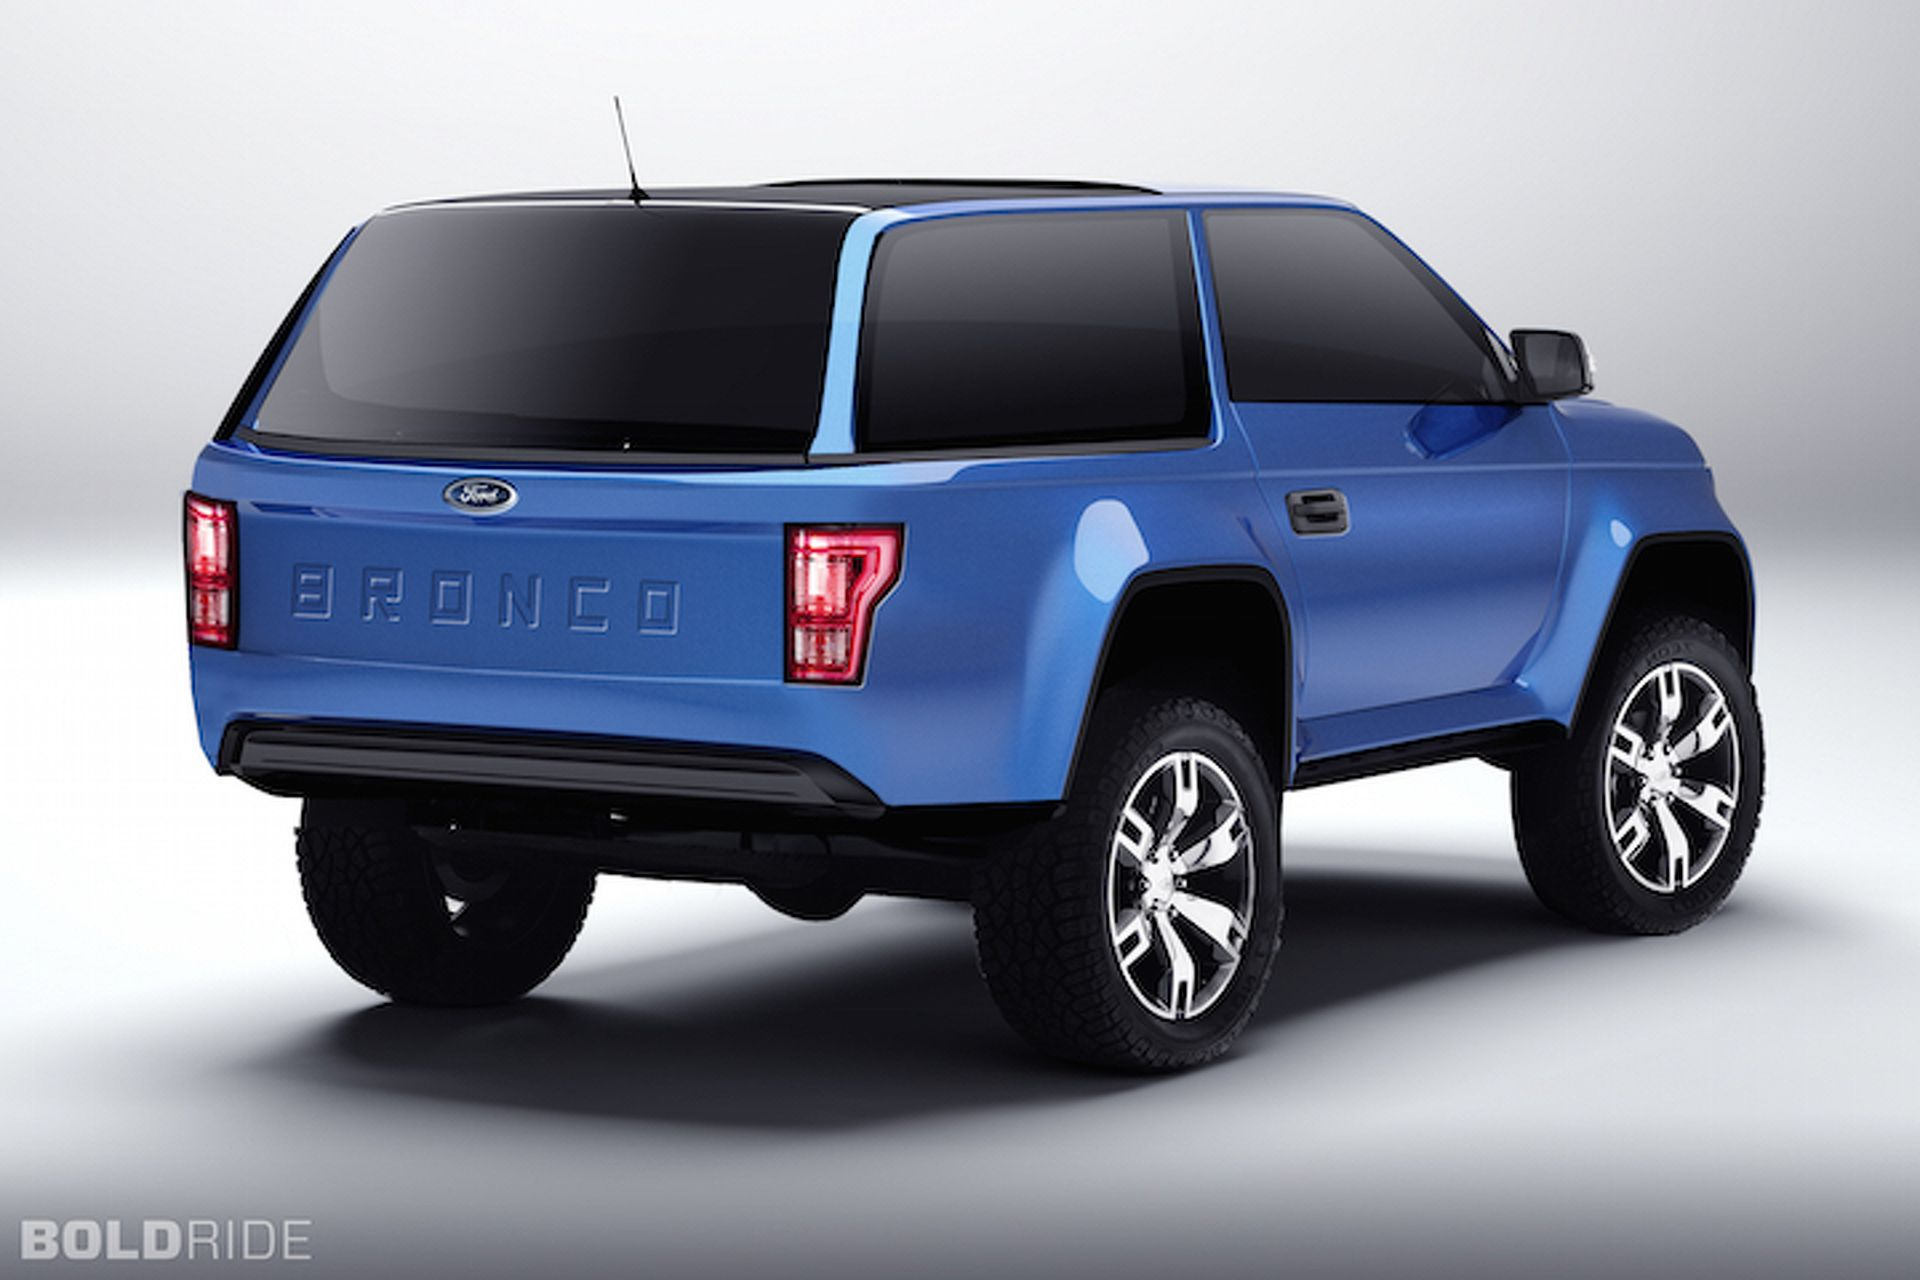 4 Things To Know About The 2017 Ford Bronco When It Returns Ford Bronco 2017 Ford Bronco Ford Bronco Concept